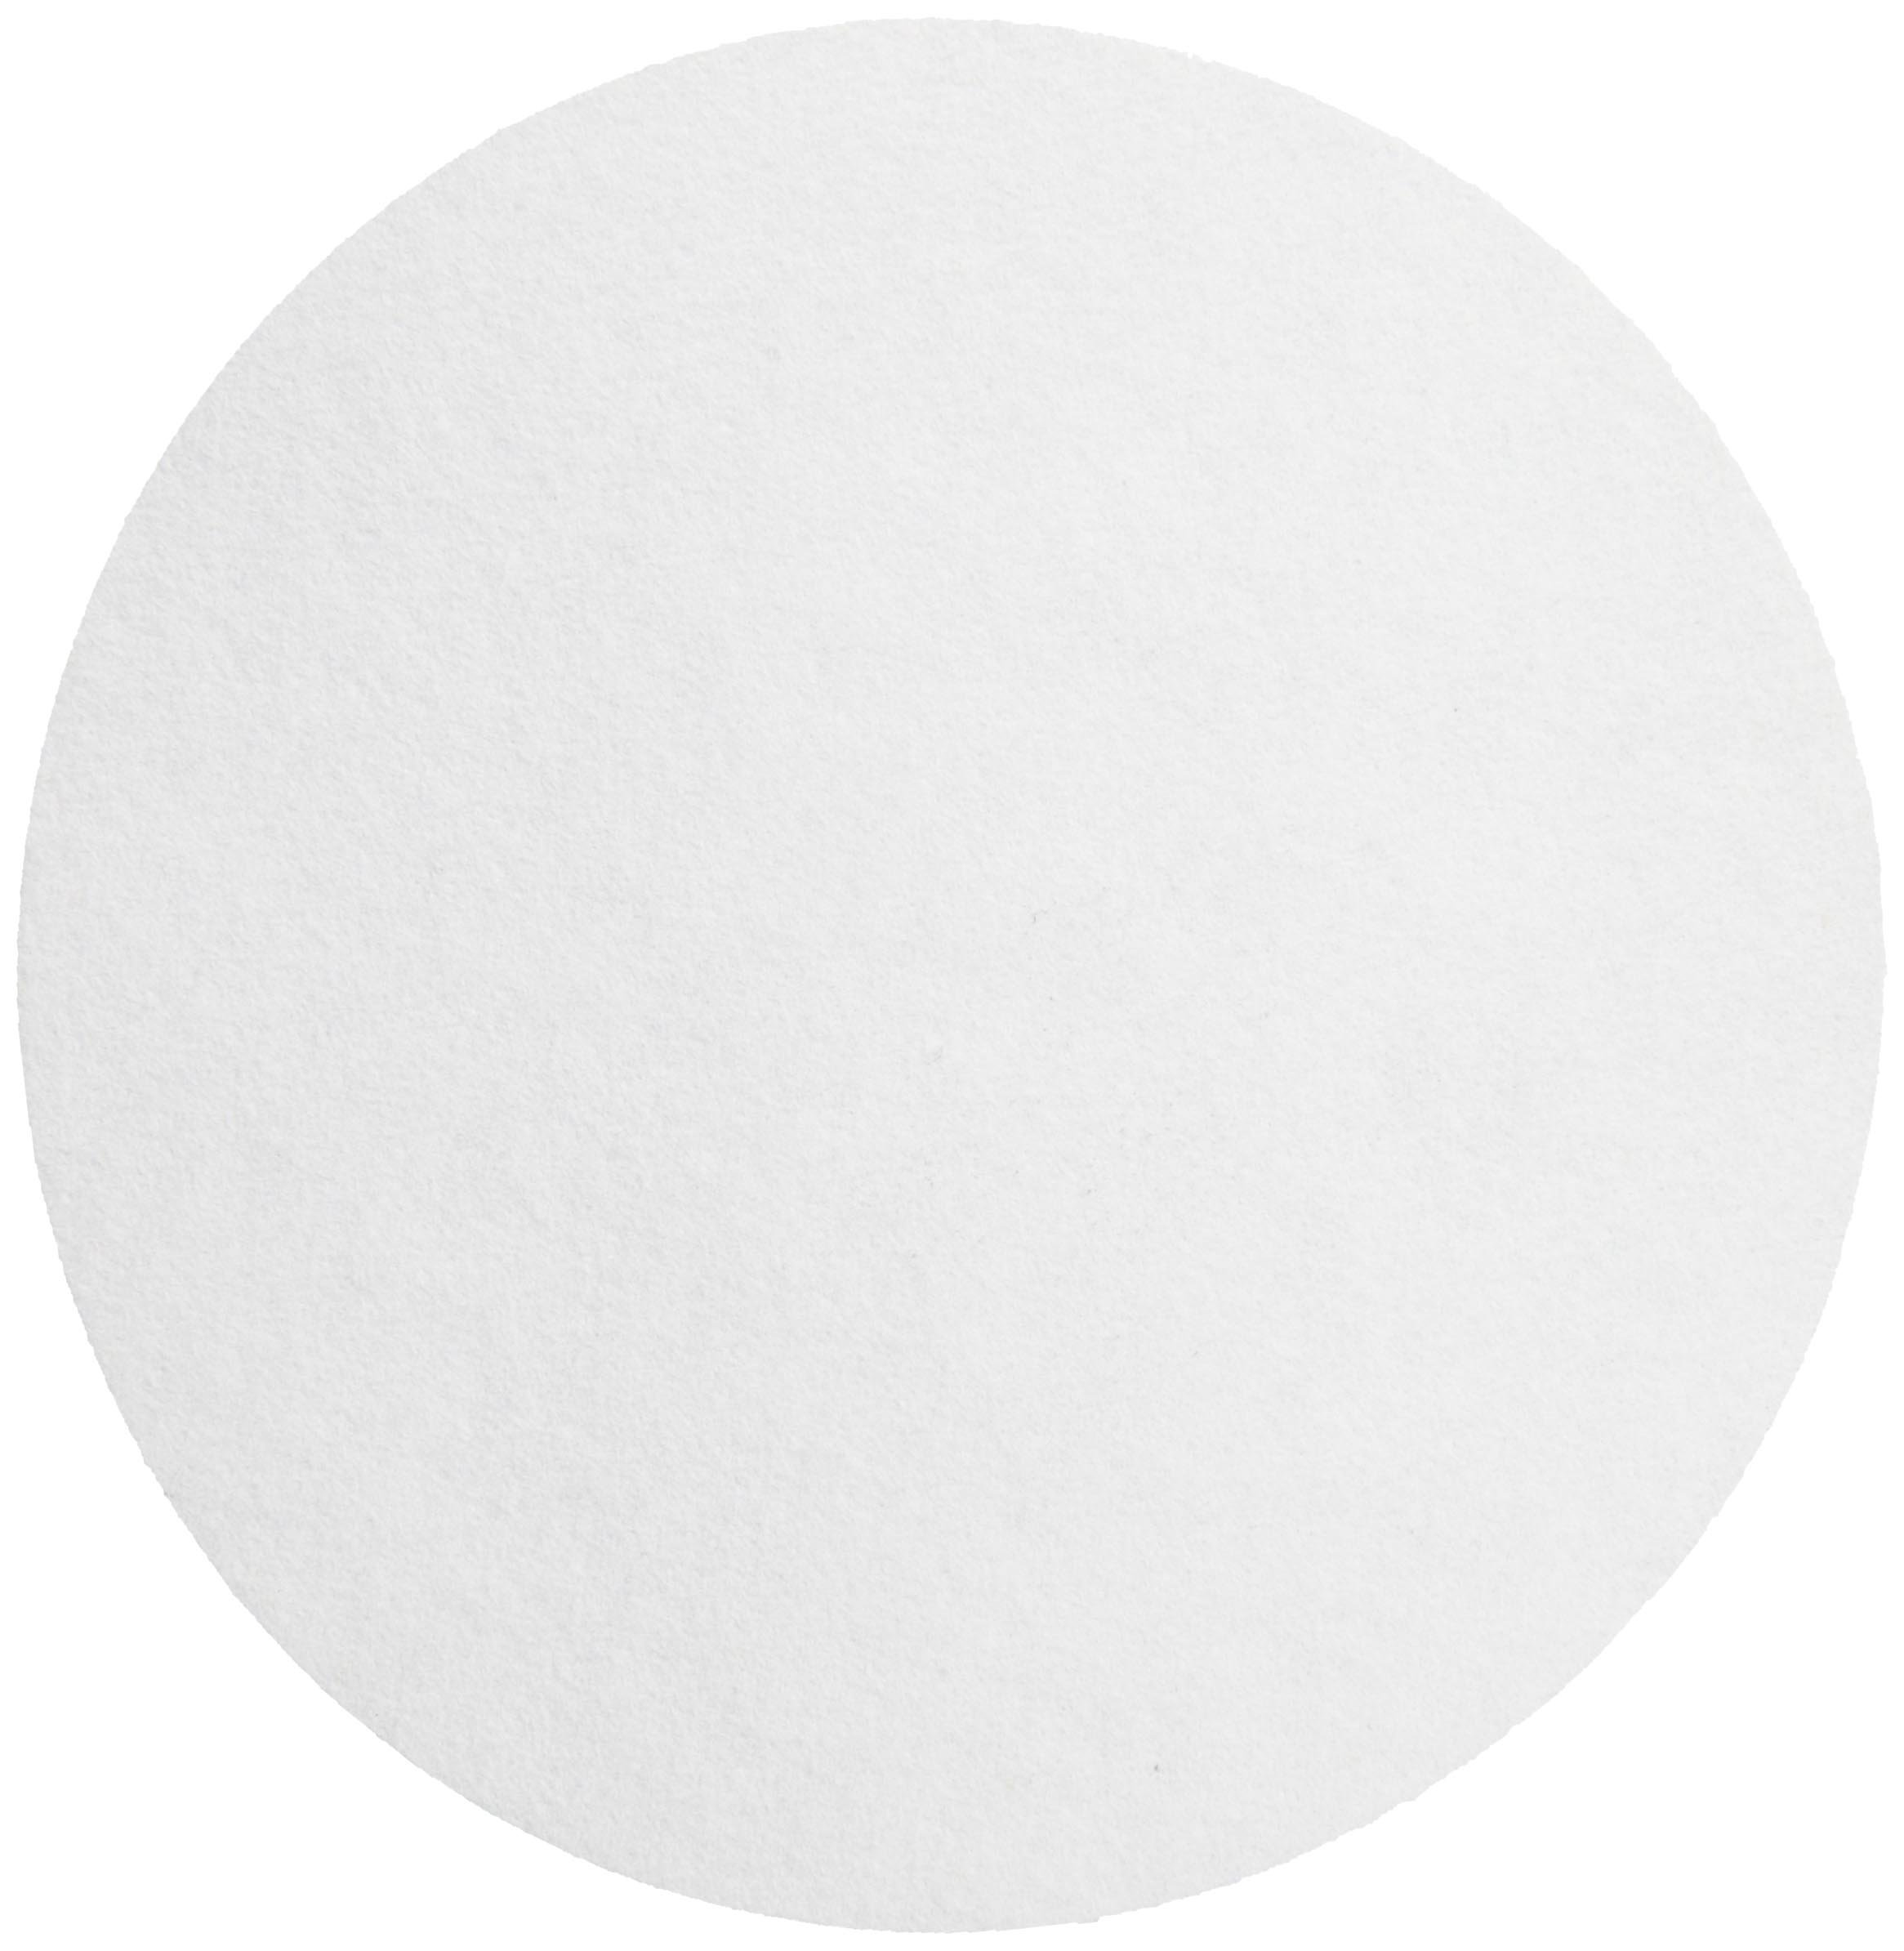 Whatman 1454-185 Hardened Low Ash Quantitative Filter Paper, 18.5cm Diameter, 22 Micron, Grade 54 (Pack of 100) by Whatman